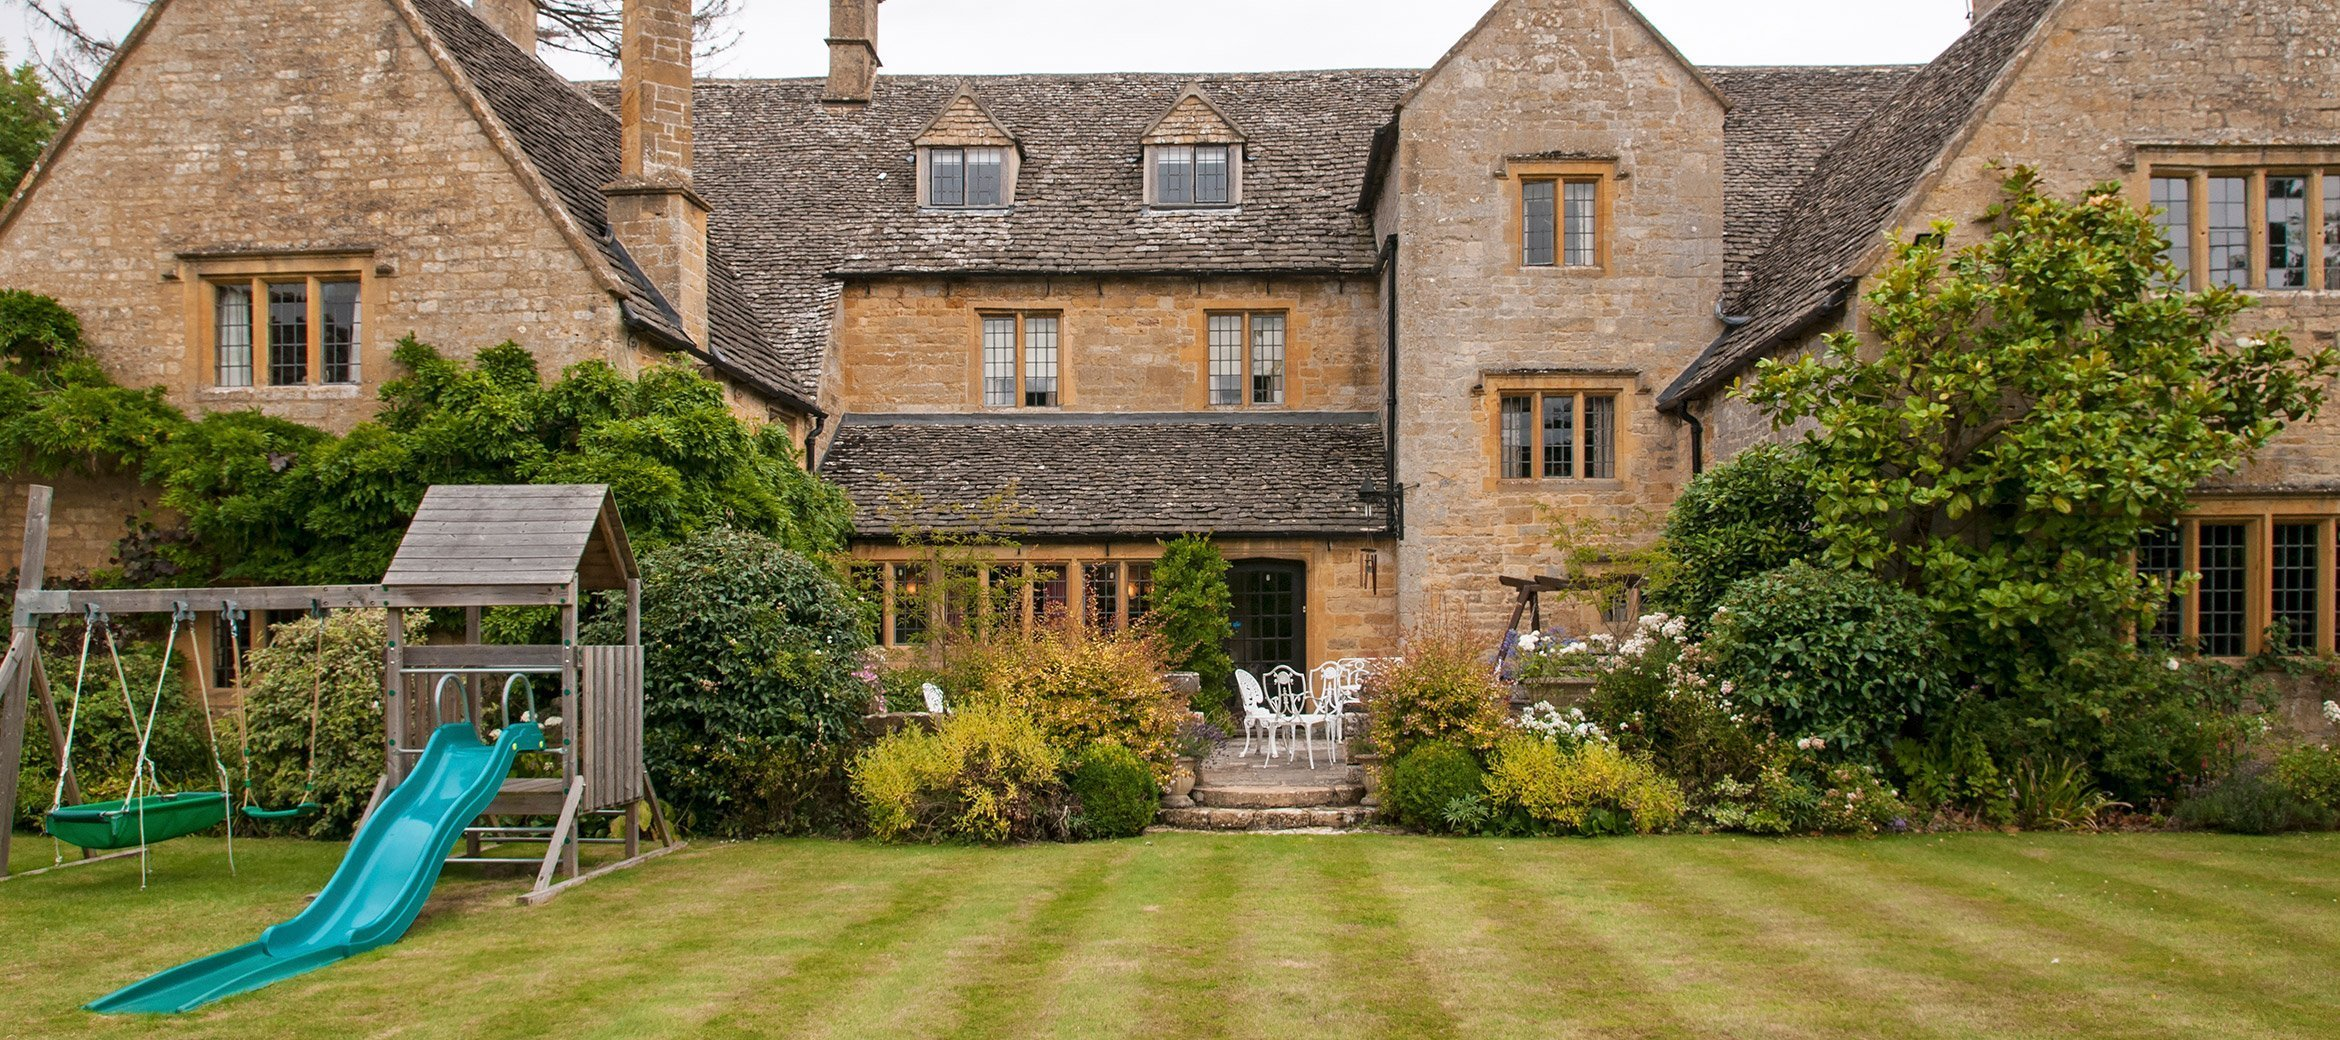 broadway-cotswold-manor-house-play-set